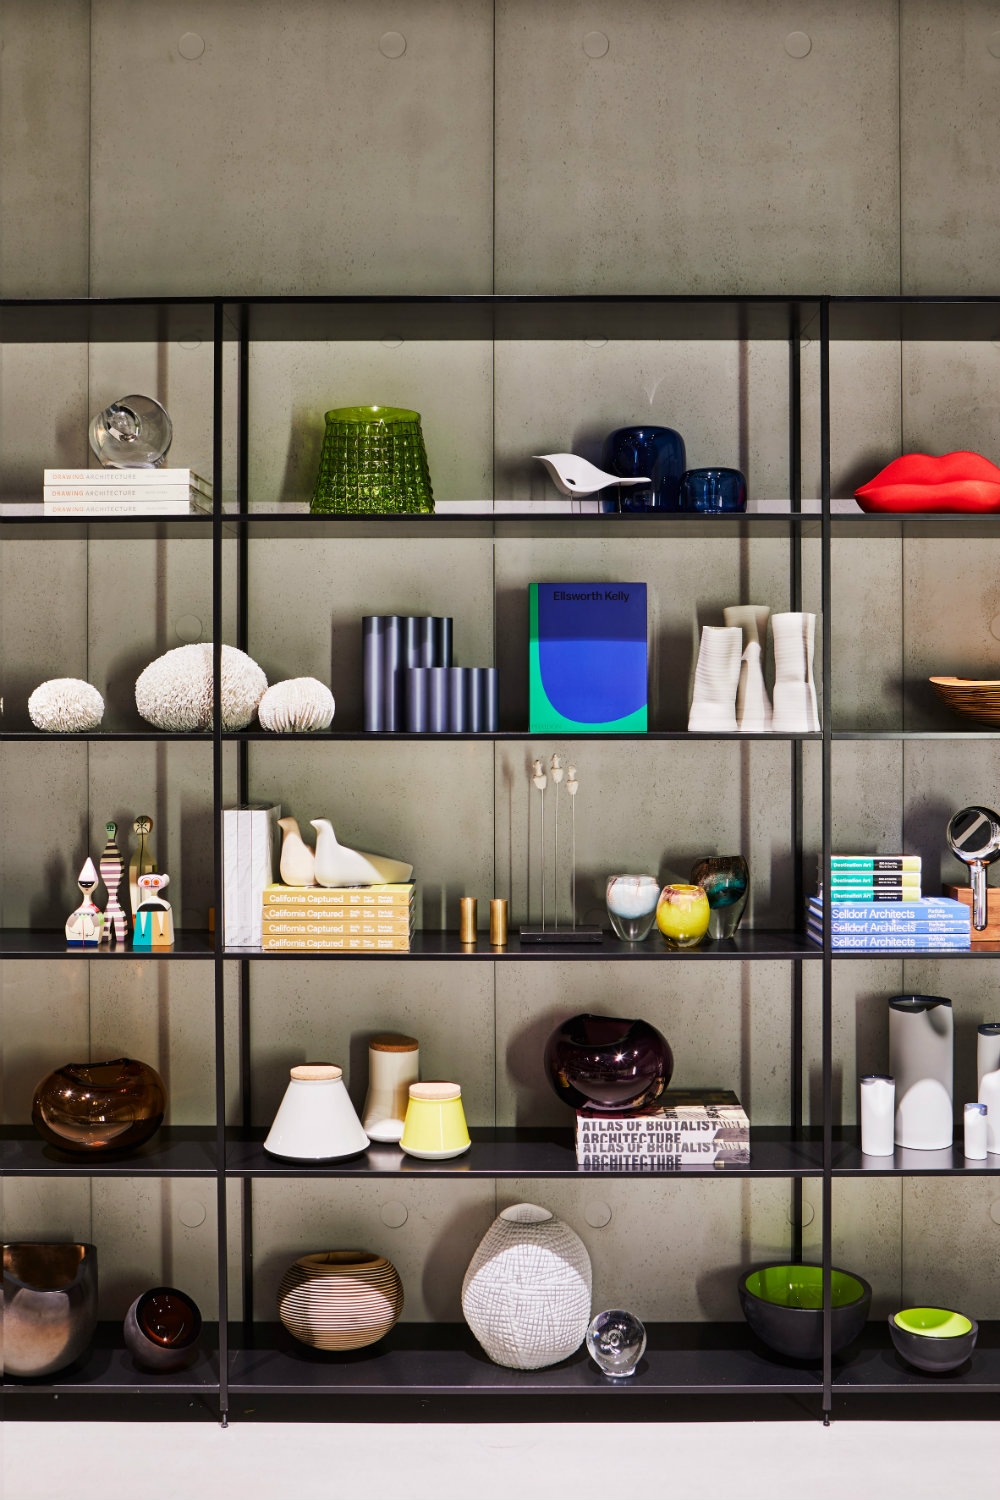 Luminaire shop opens in Los Angeles with a contemporary showroom luminaire Luminaire shop opens in Los Angeles with a contemporary showroom Luminaire shop opens in Los Angeles with a contemporary showroom 5